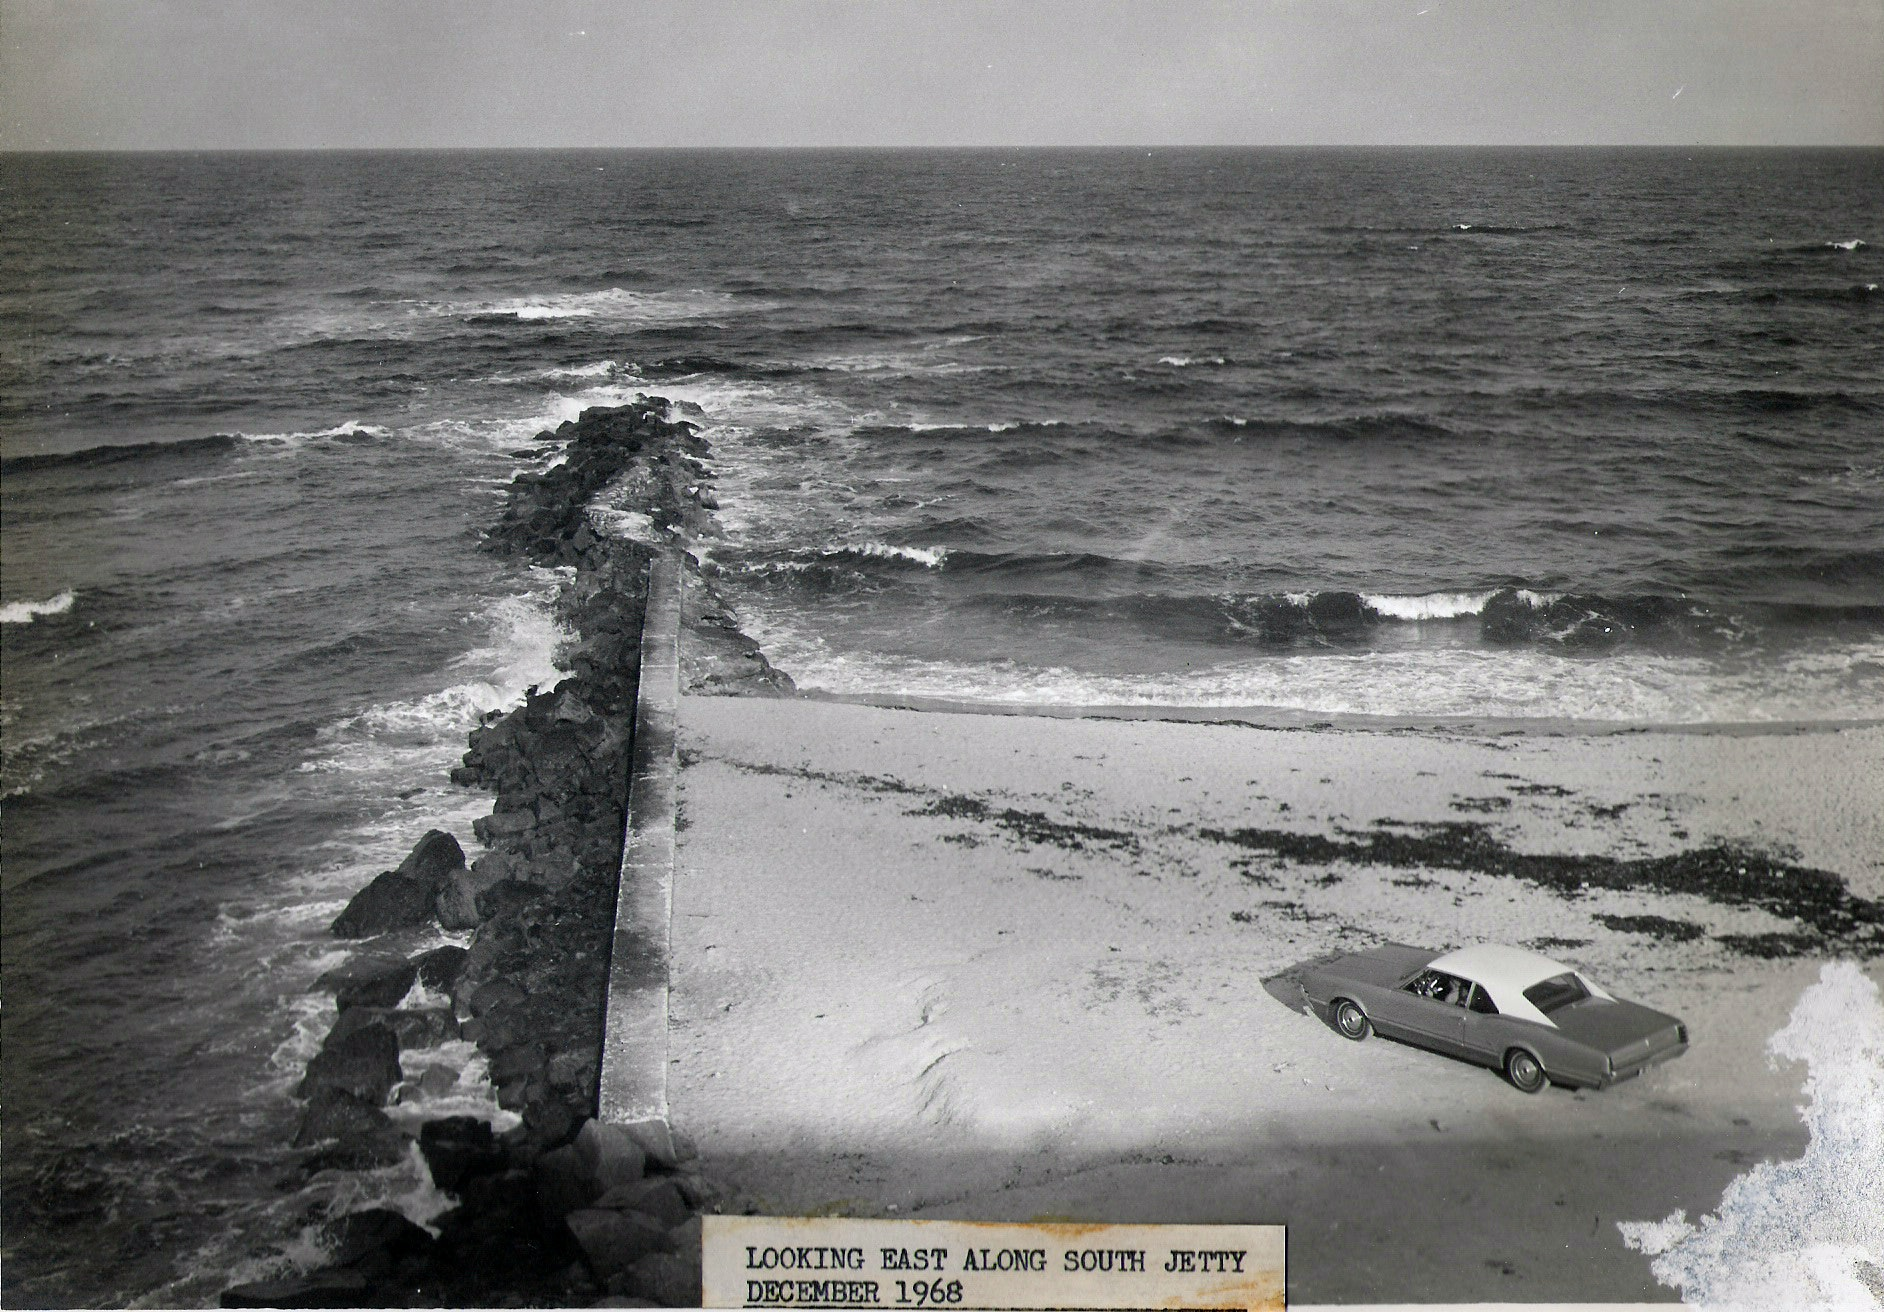 1968 view of south jetty looking East with car on beach shore at base of jetty